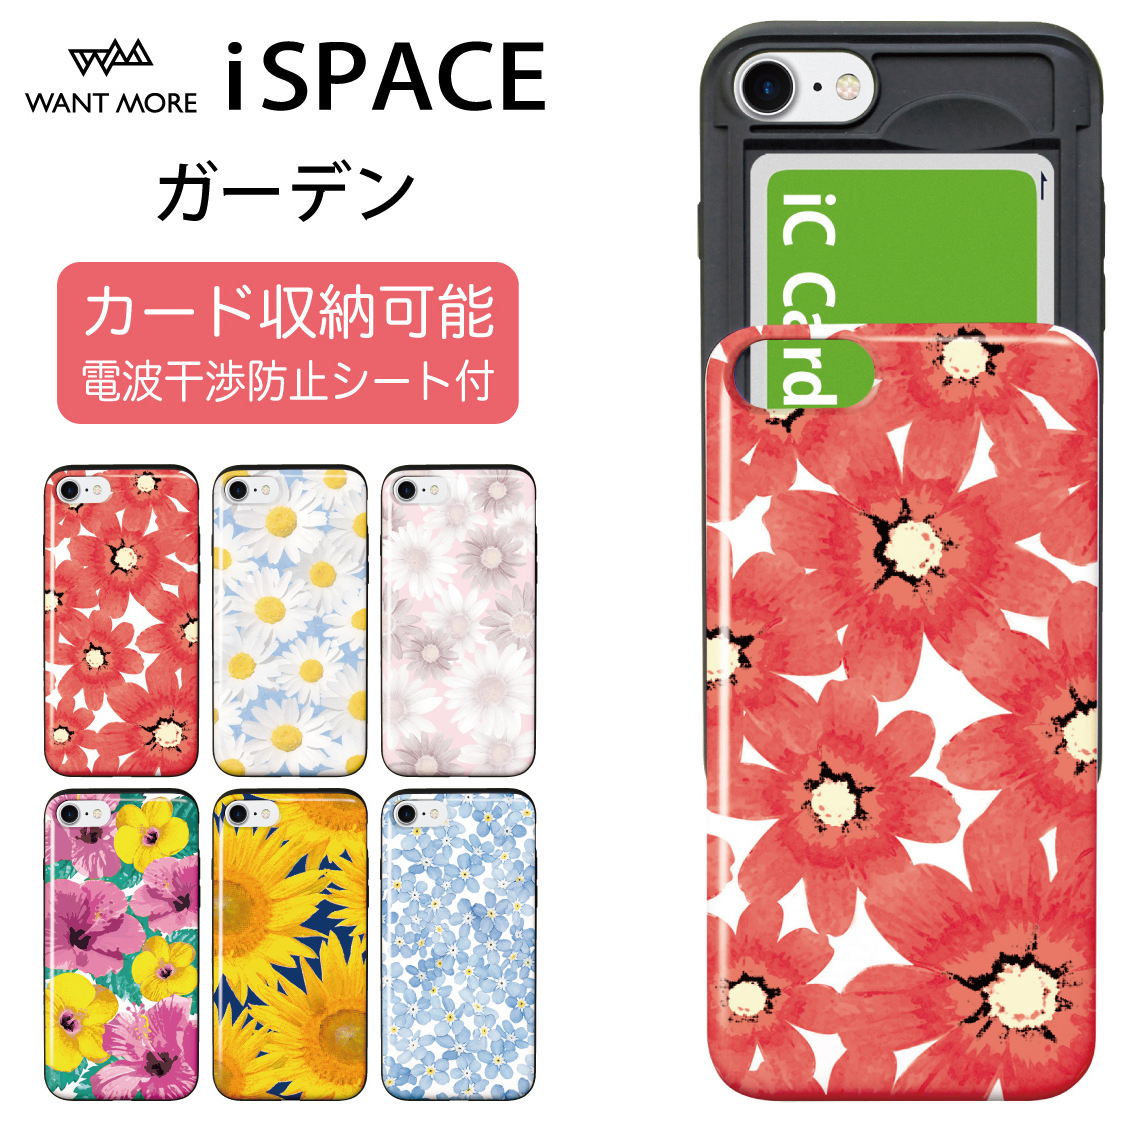 Tasks I Show Cute Ispace Iphone11 Case Card Storing Back